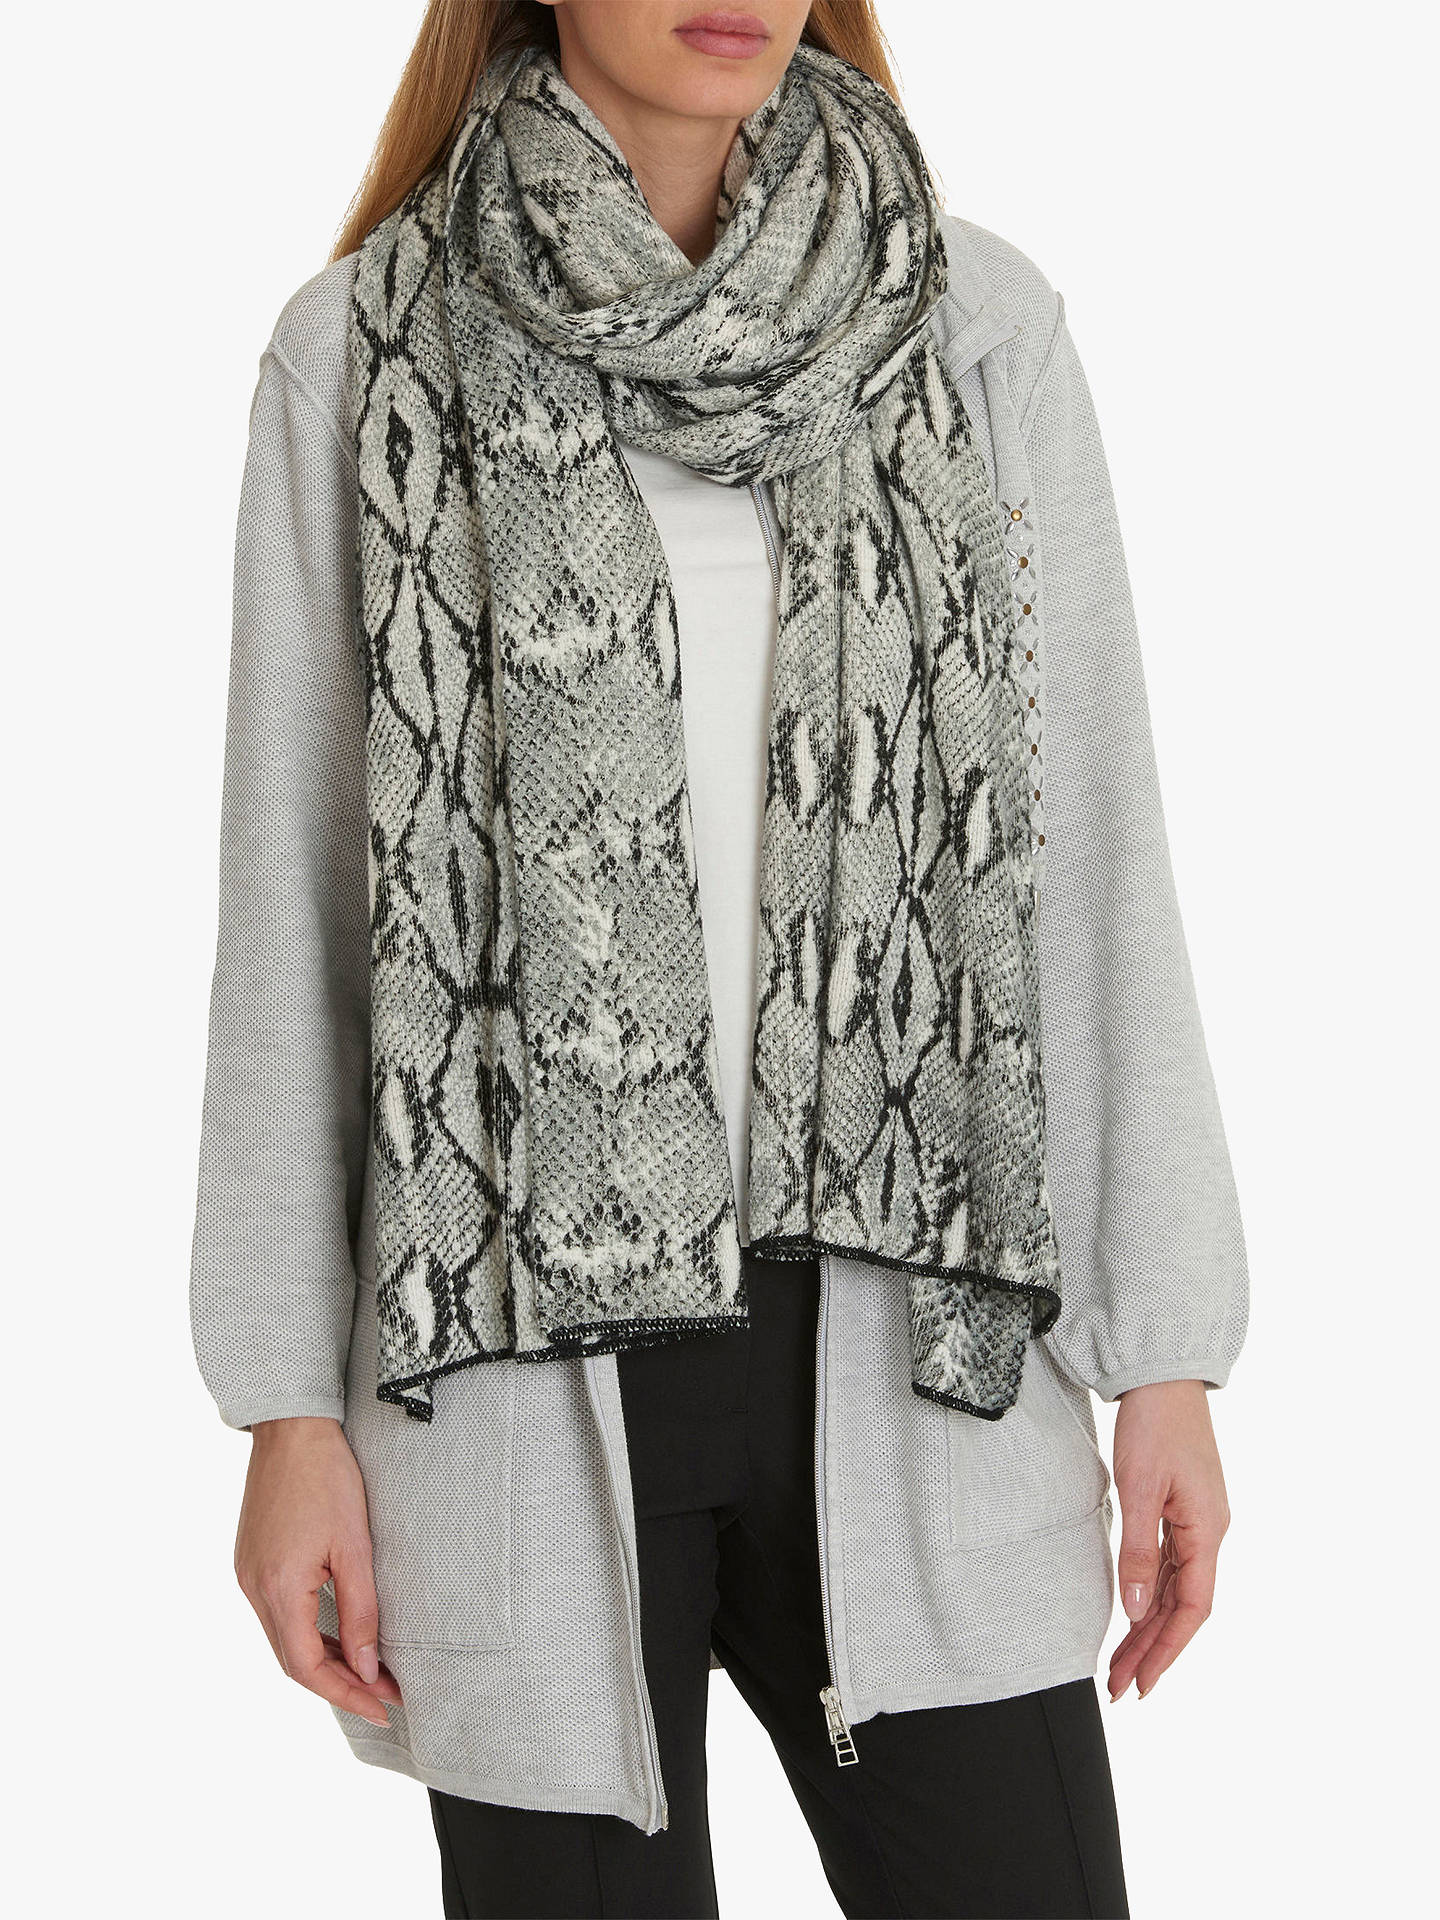 BuyBetty Barclay Snake Print Scarf, Grey Online at johnlewis.com